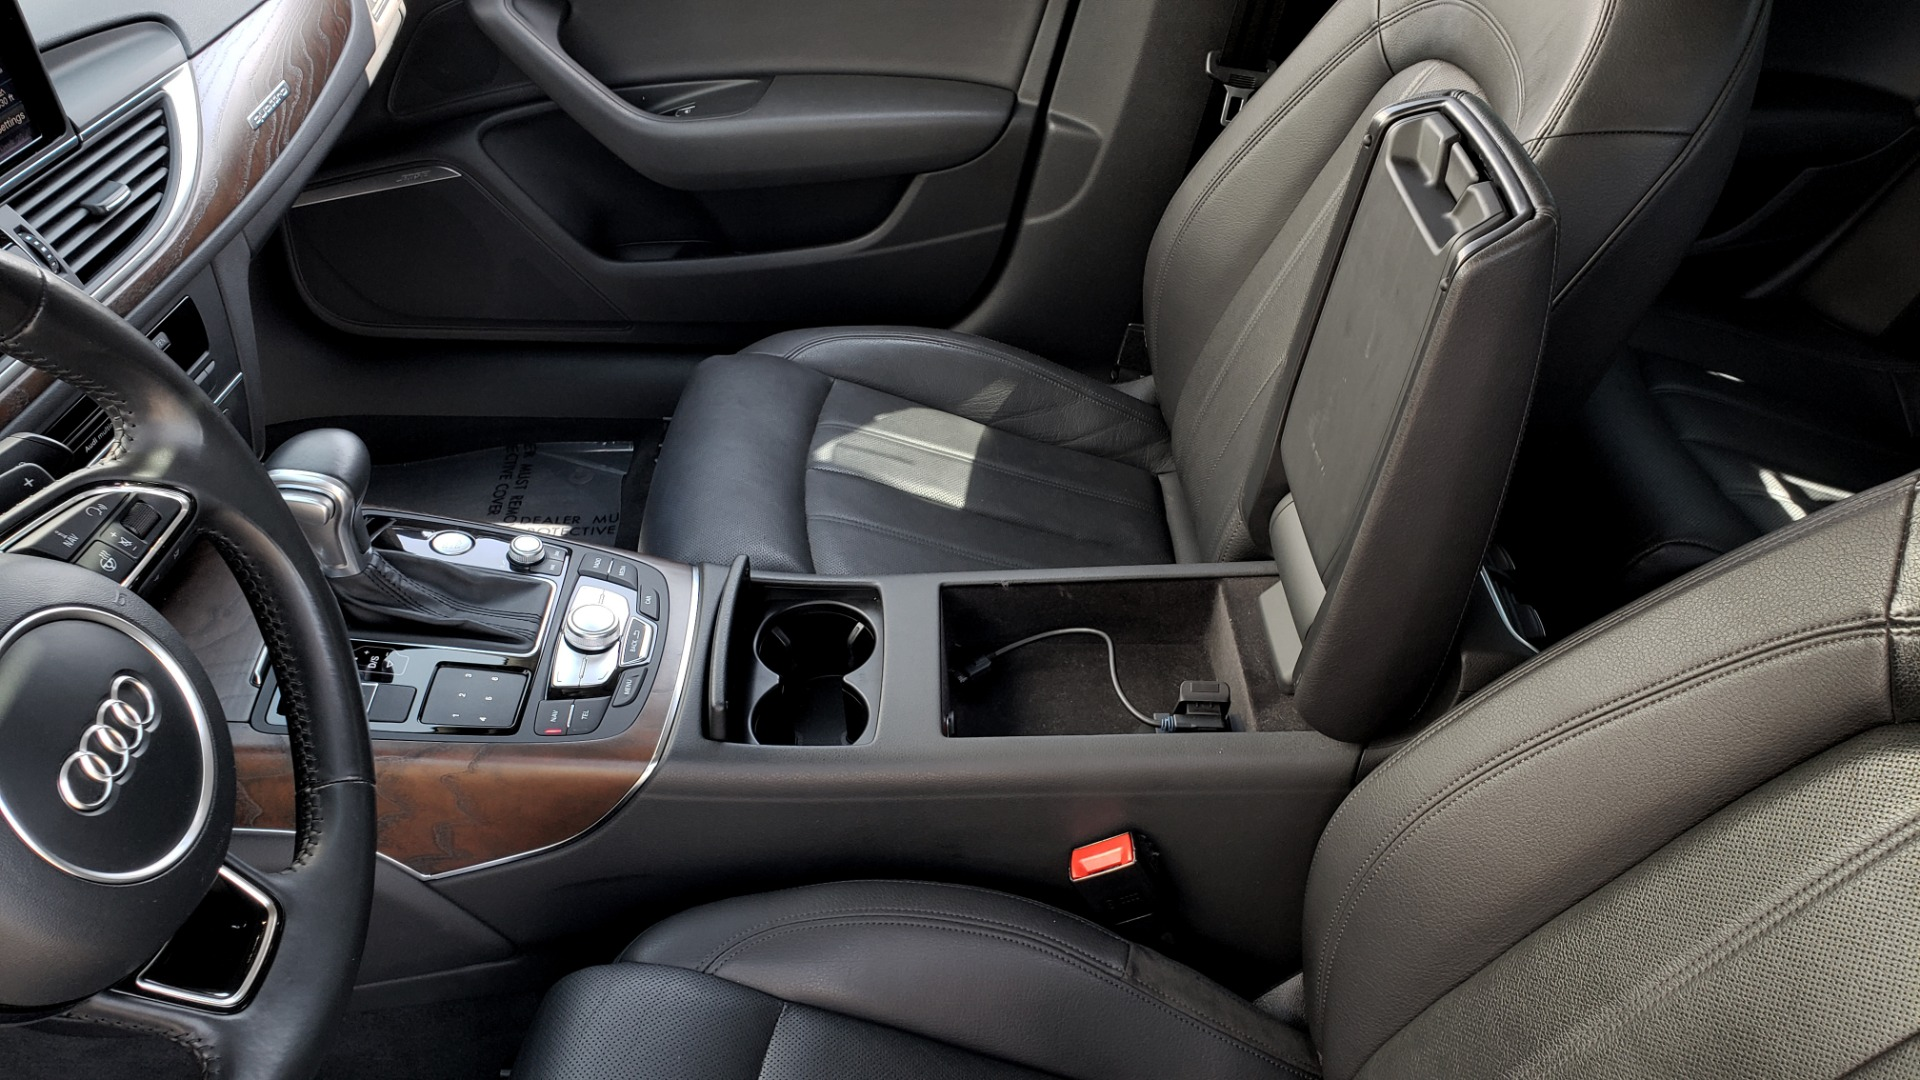 Used 2015 Audi A6 3.0T PRESTIGE / BLACK OPTIC / CLD WTHR / BOSE / HUD / SUNROOF for sale Sold at Formula Imports in Charlotte NC 28227 59